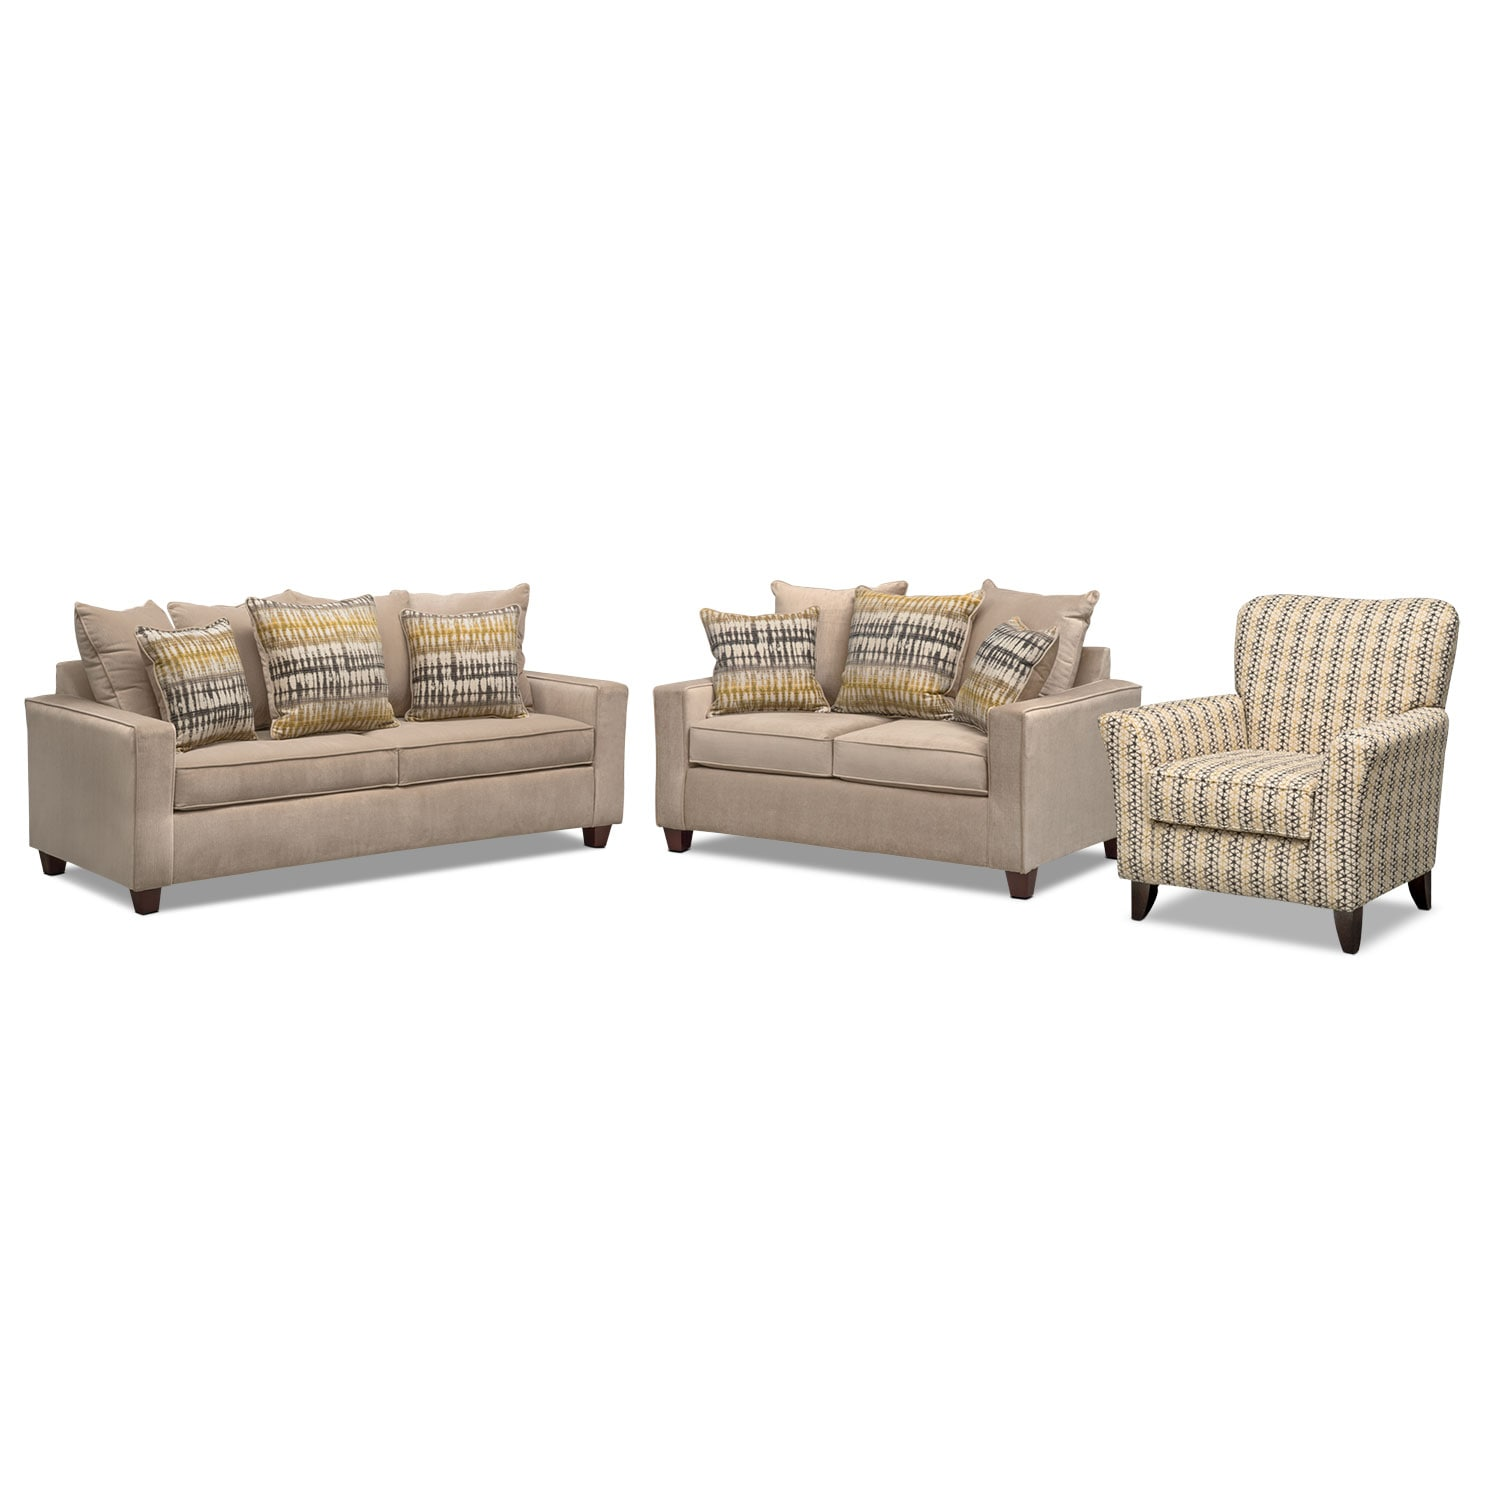 Living Room Furniture - Bryden Sofa, Loveseat and Accent Chair Set - Beige